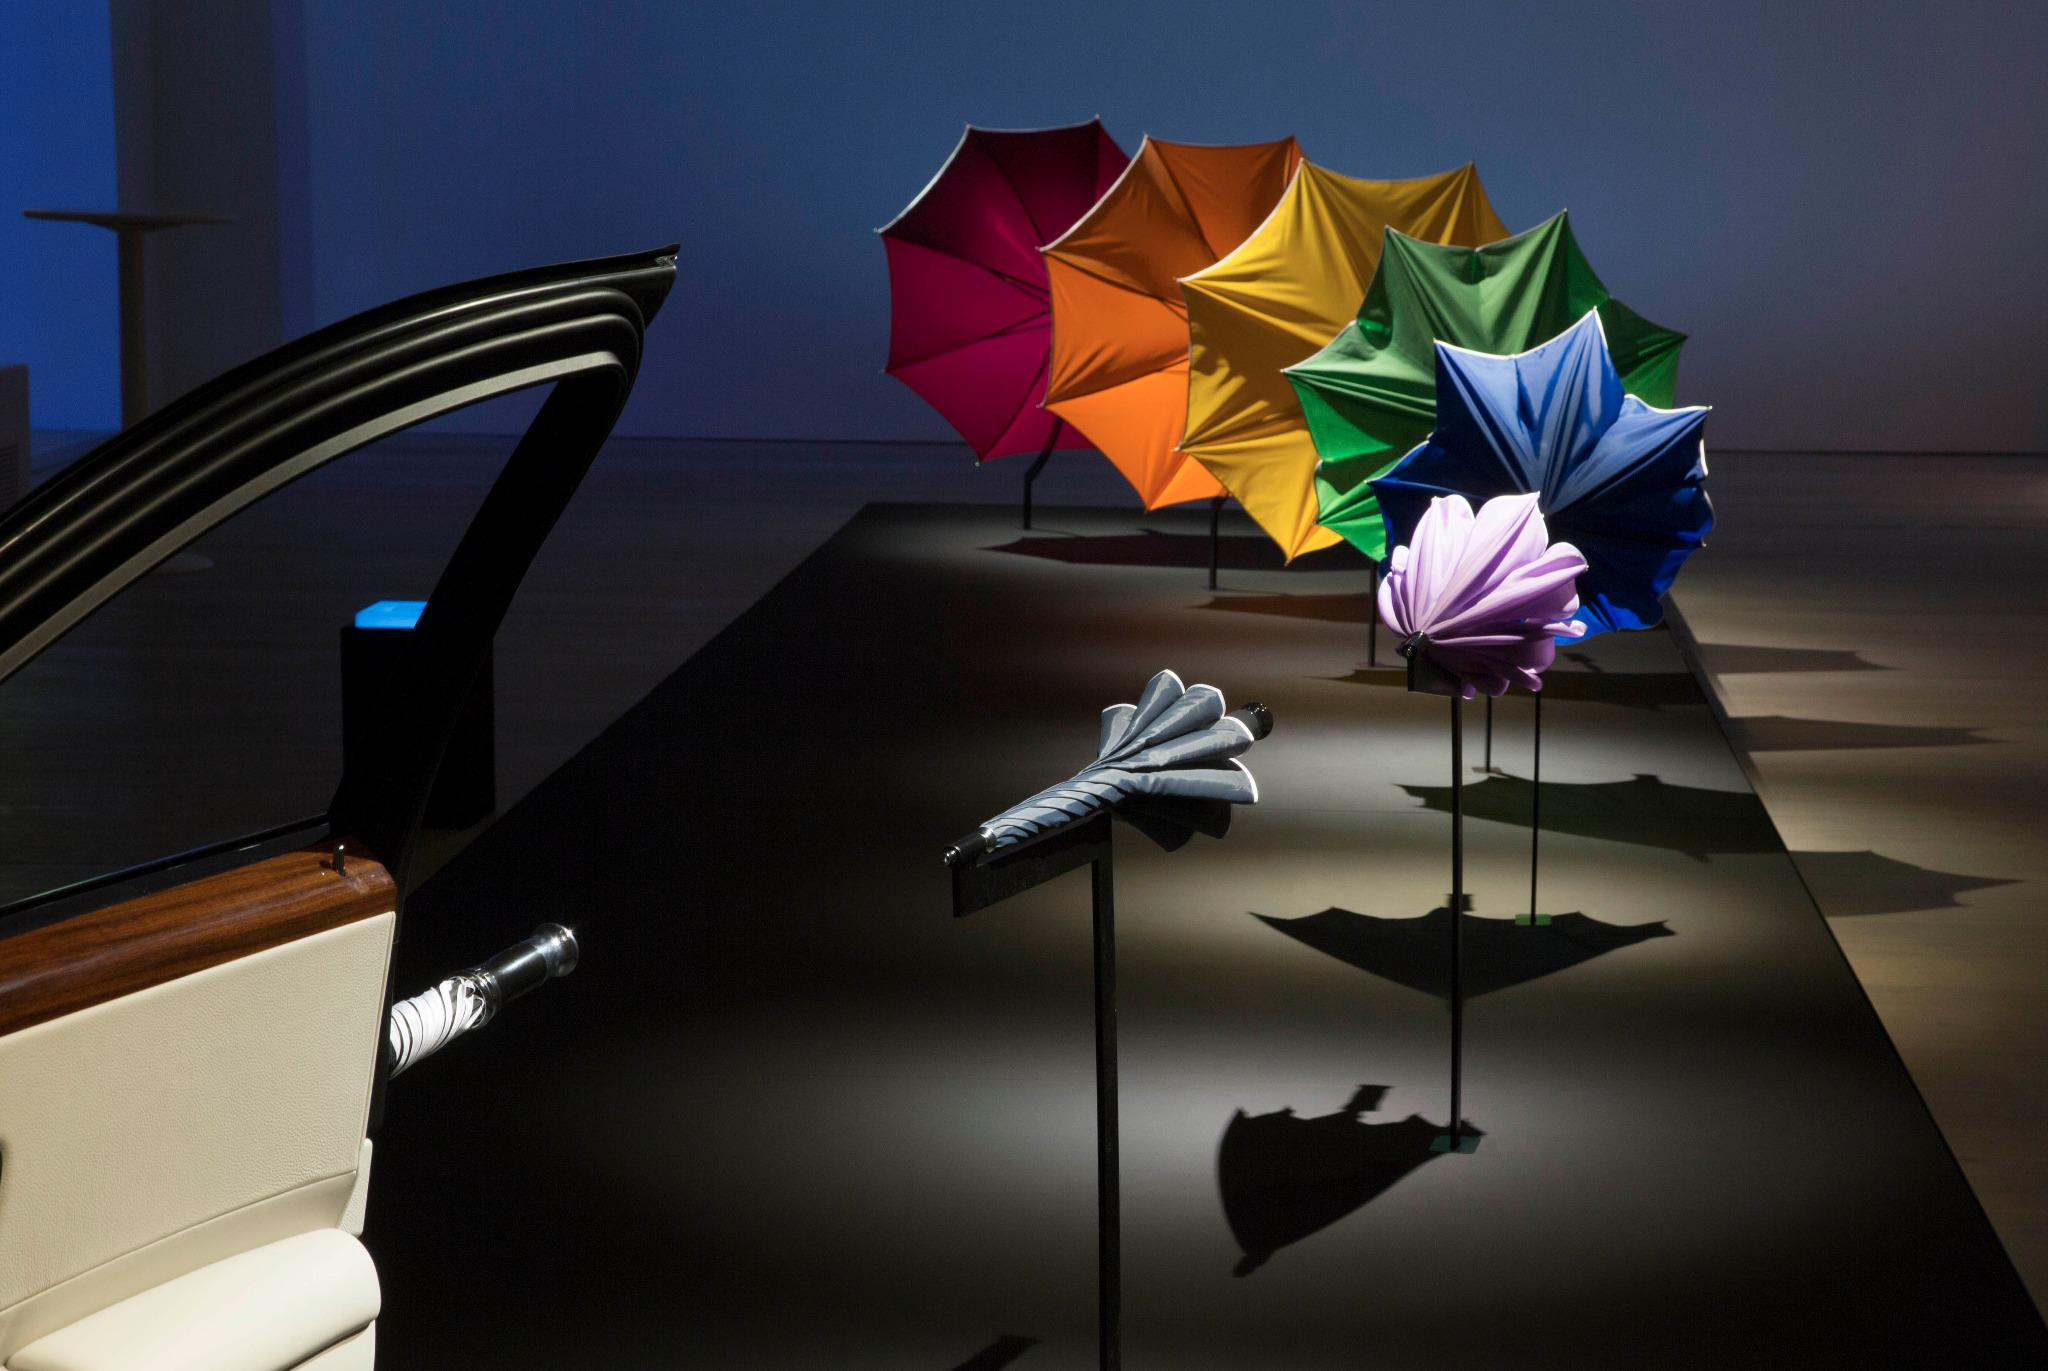 .@SteveLidbury demonstrates Rolls Royces' hidden umbrellas. In spectacular fashion. #IWIDT http://t.co/XHEVdLFSQx